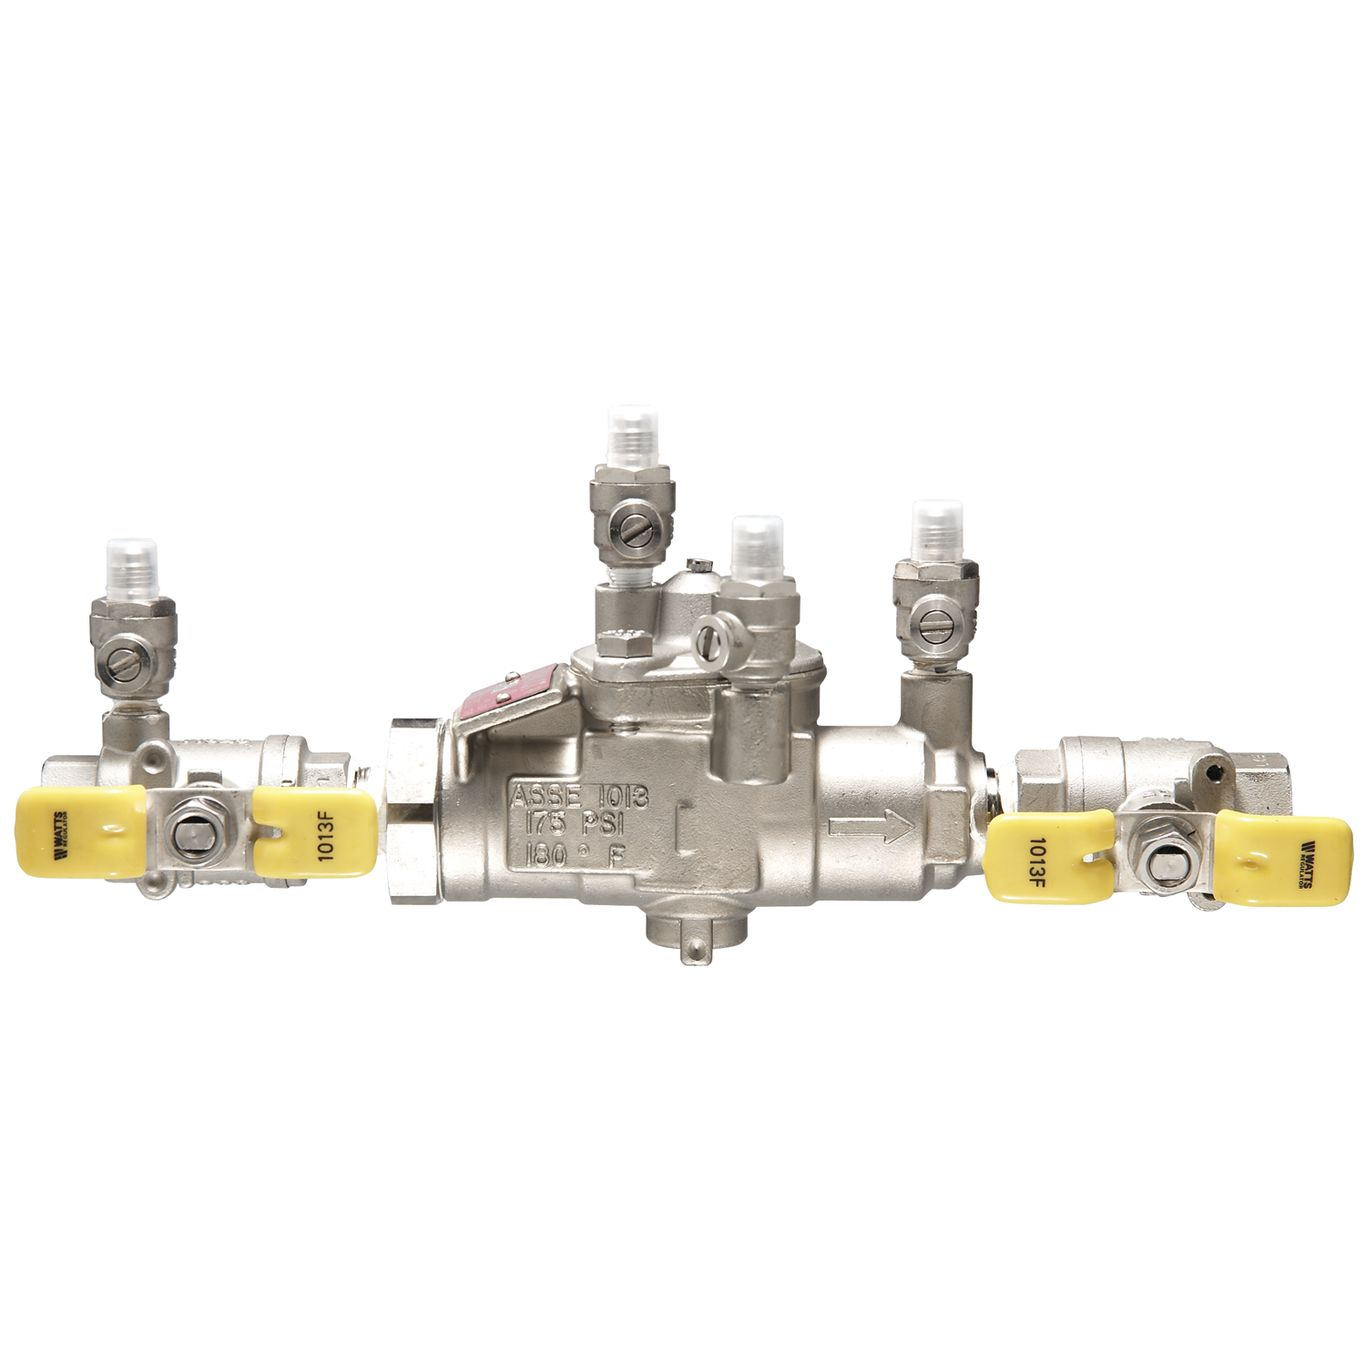 Heating Zone Valve Wiring Diagram 009 Reduced Pressure Assemblies